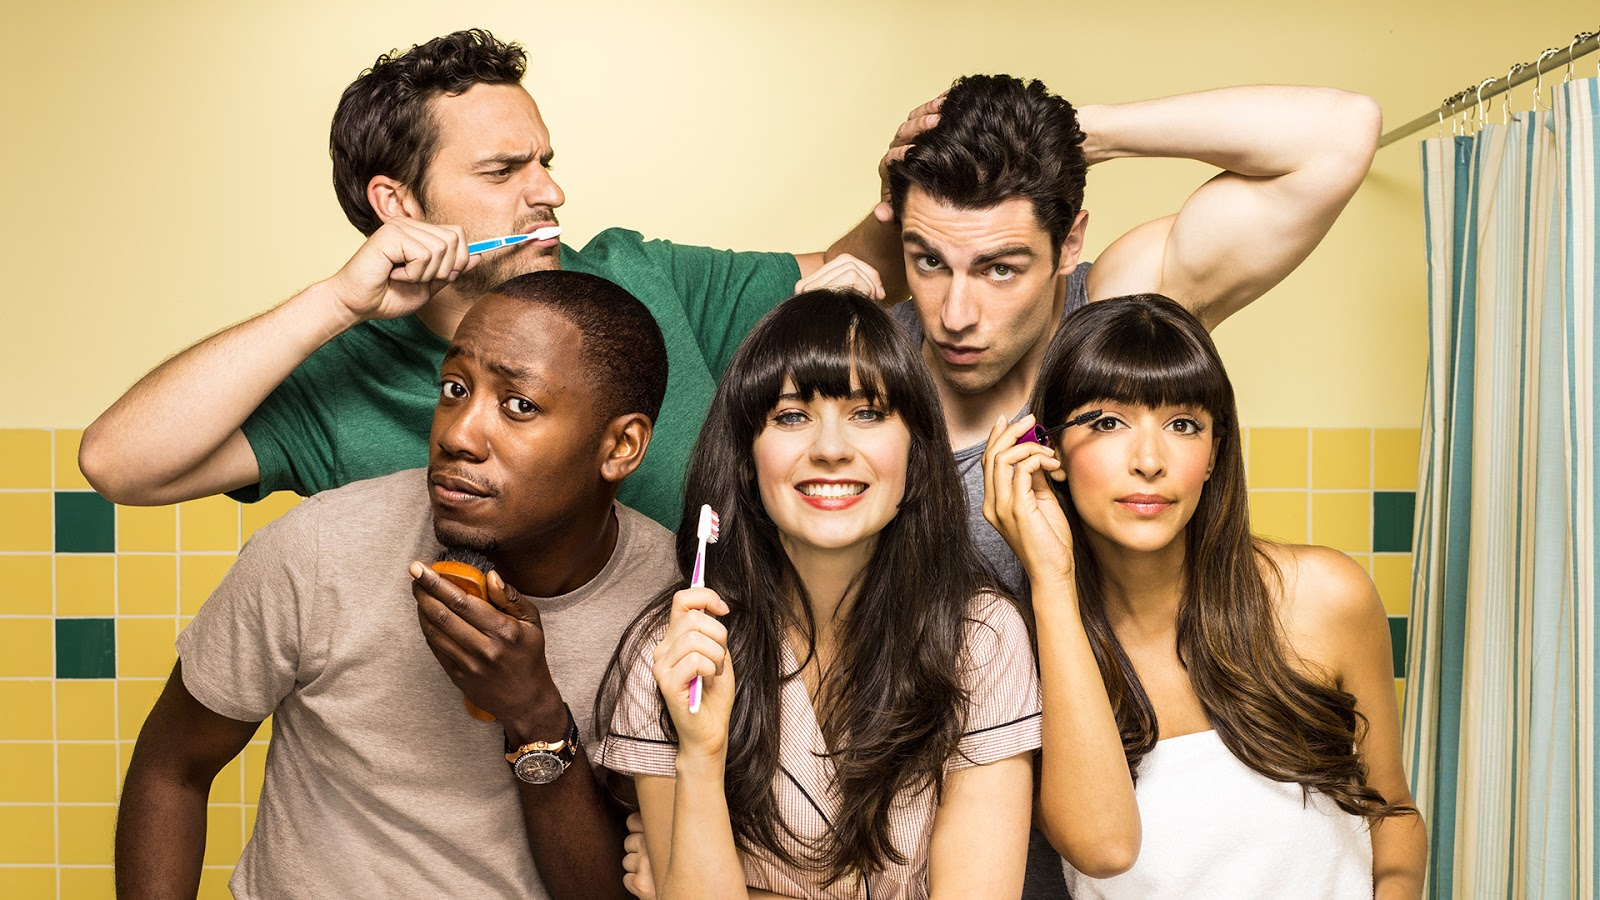 New Girl photo promo